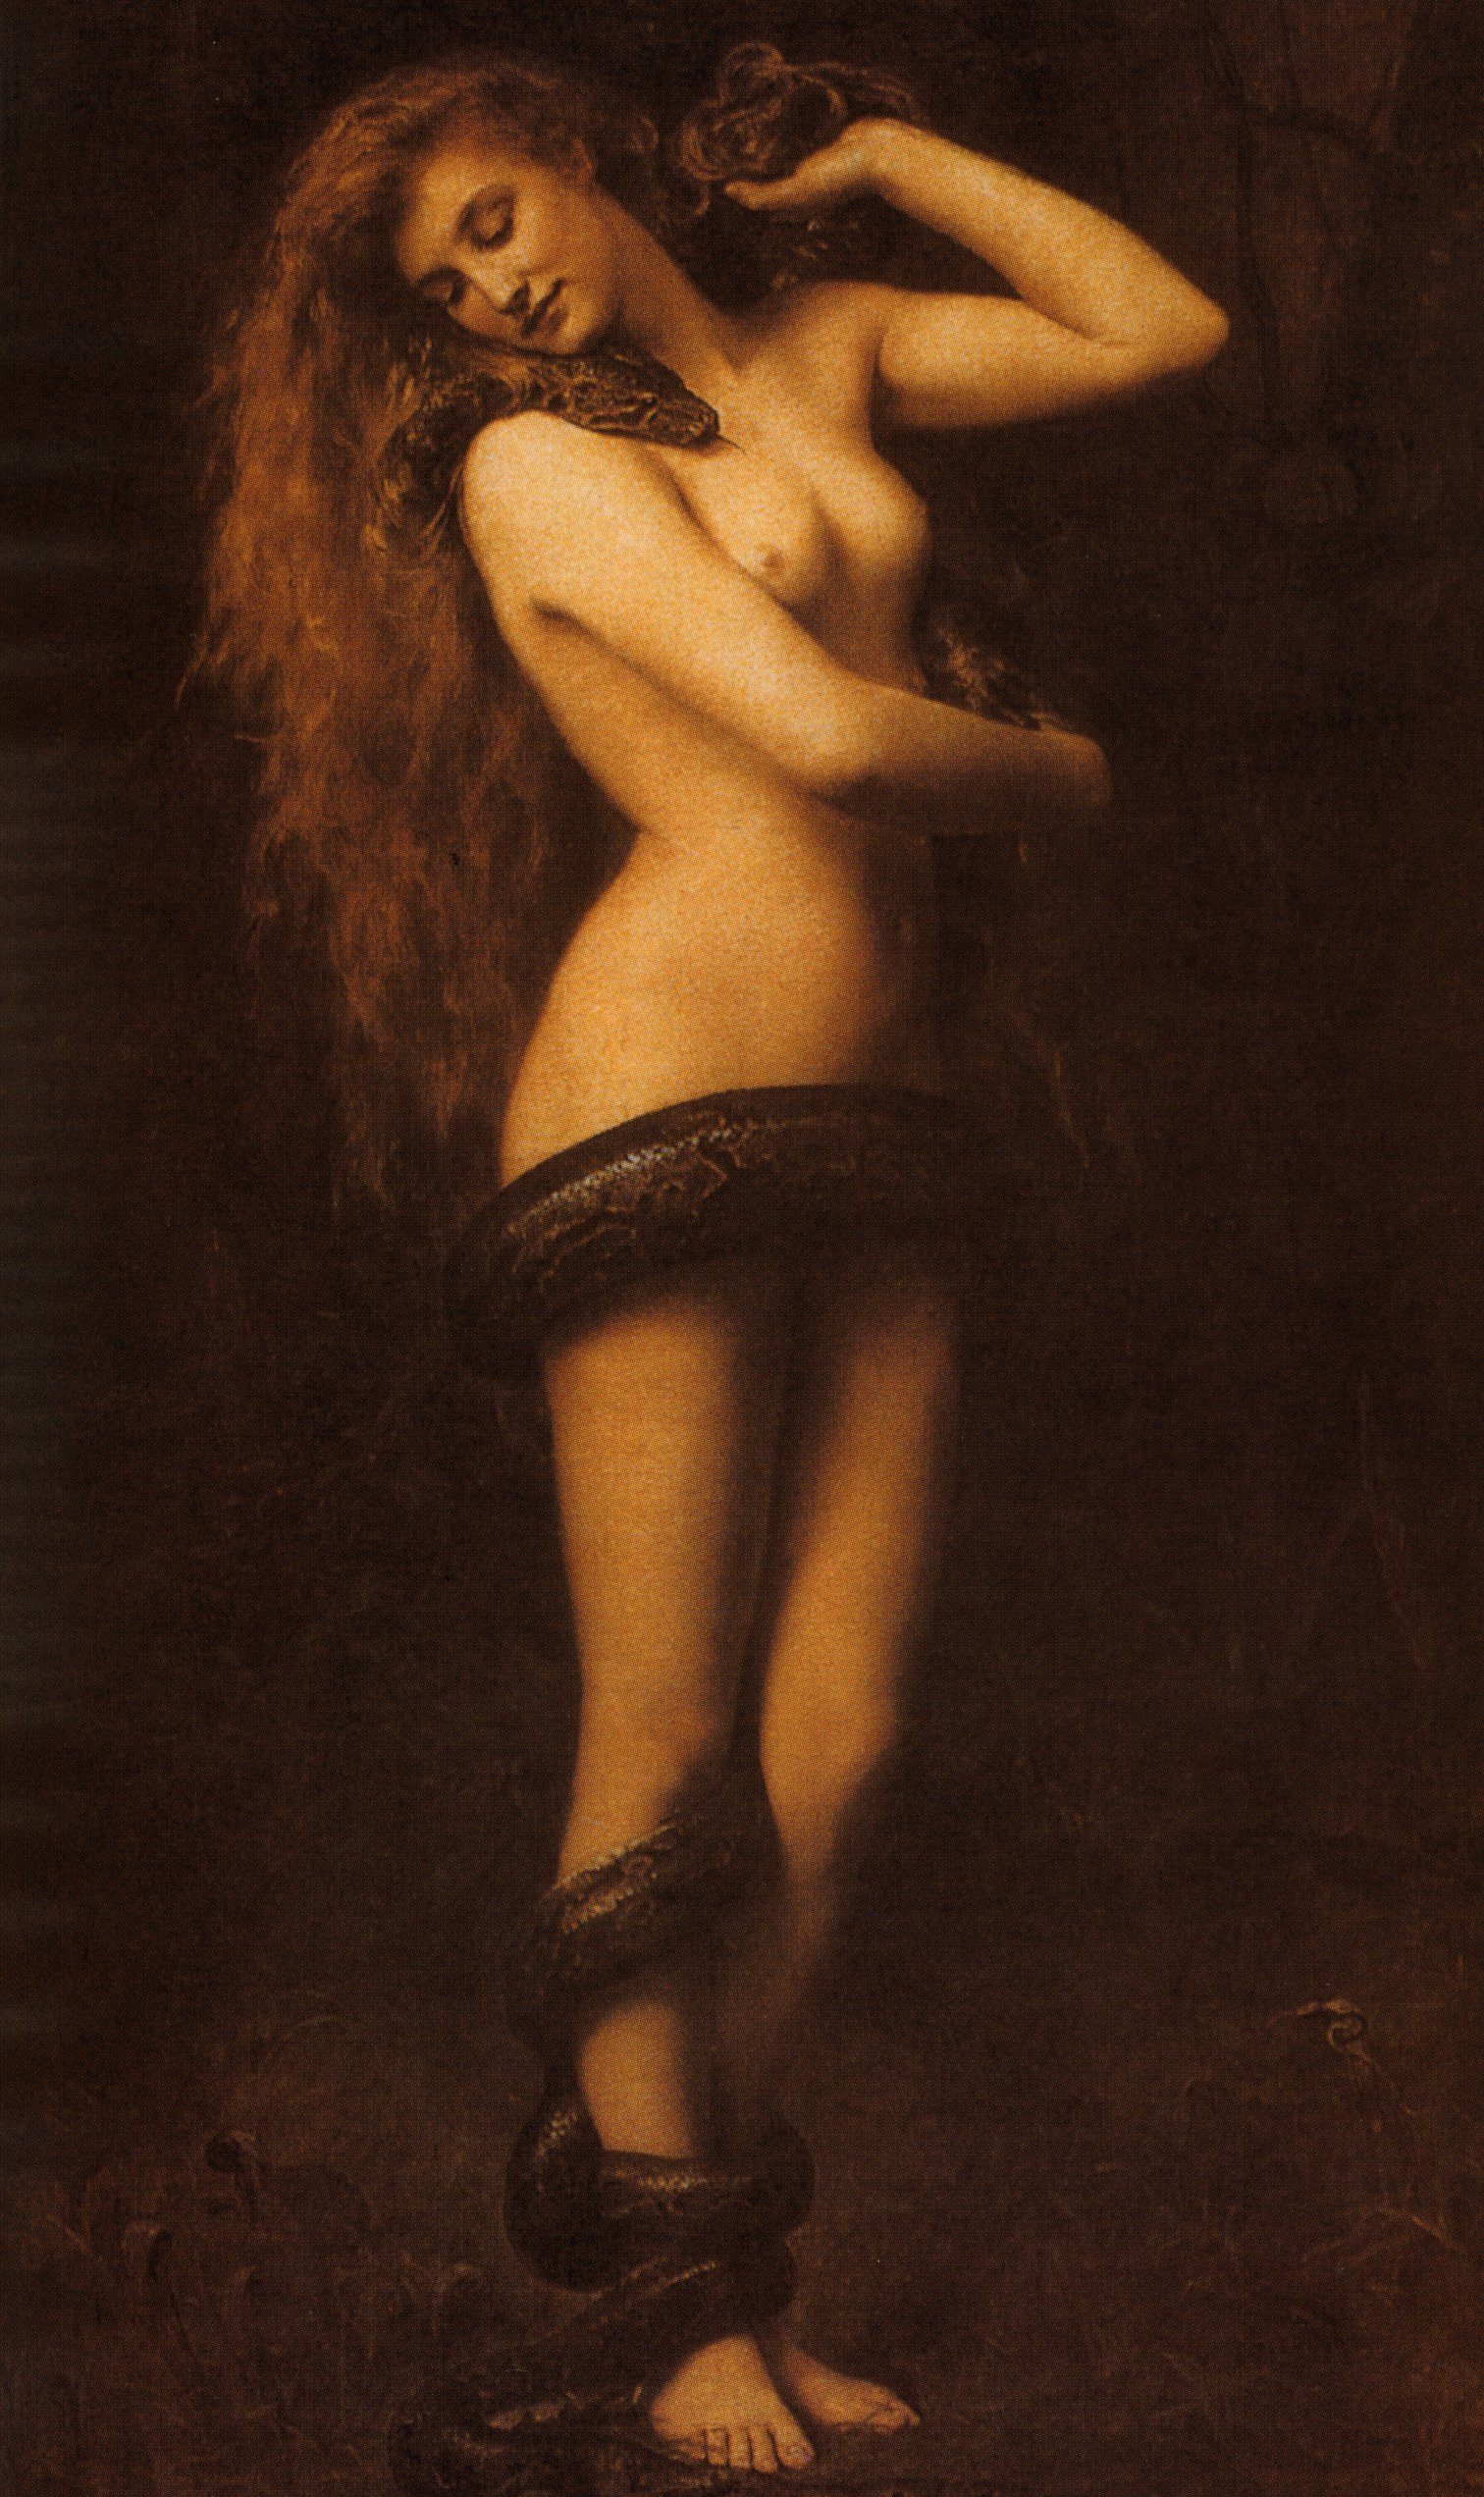 http://upload.wikimedia.org/wikipedia/commons/8/8b/Collier-Lilith.jpg